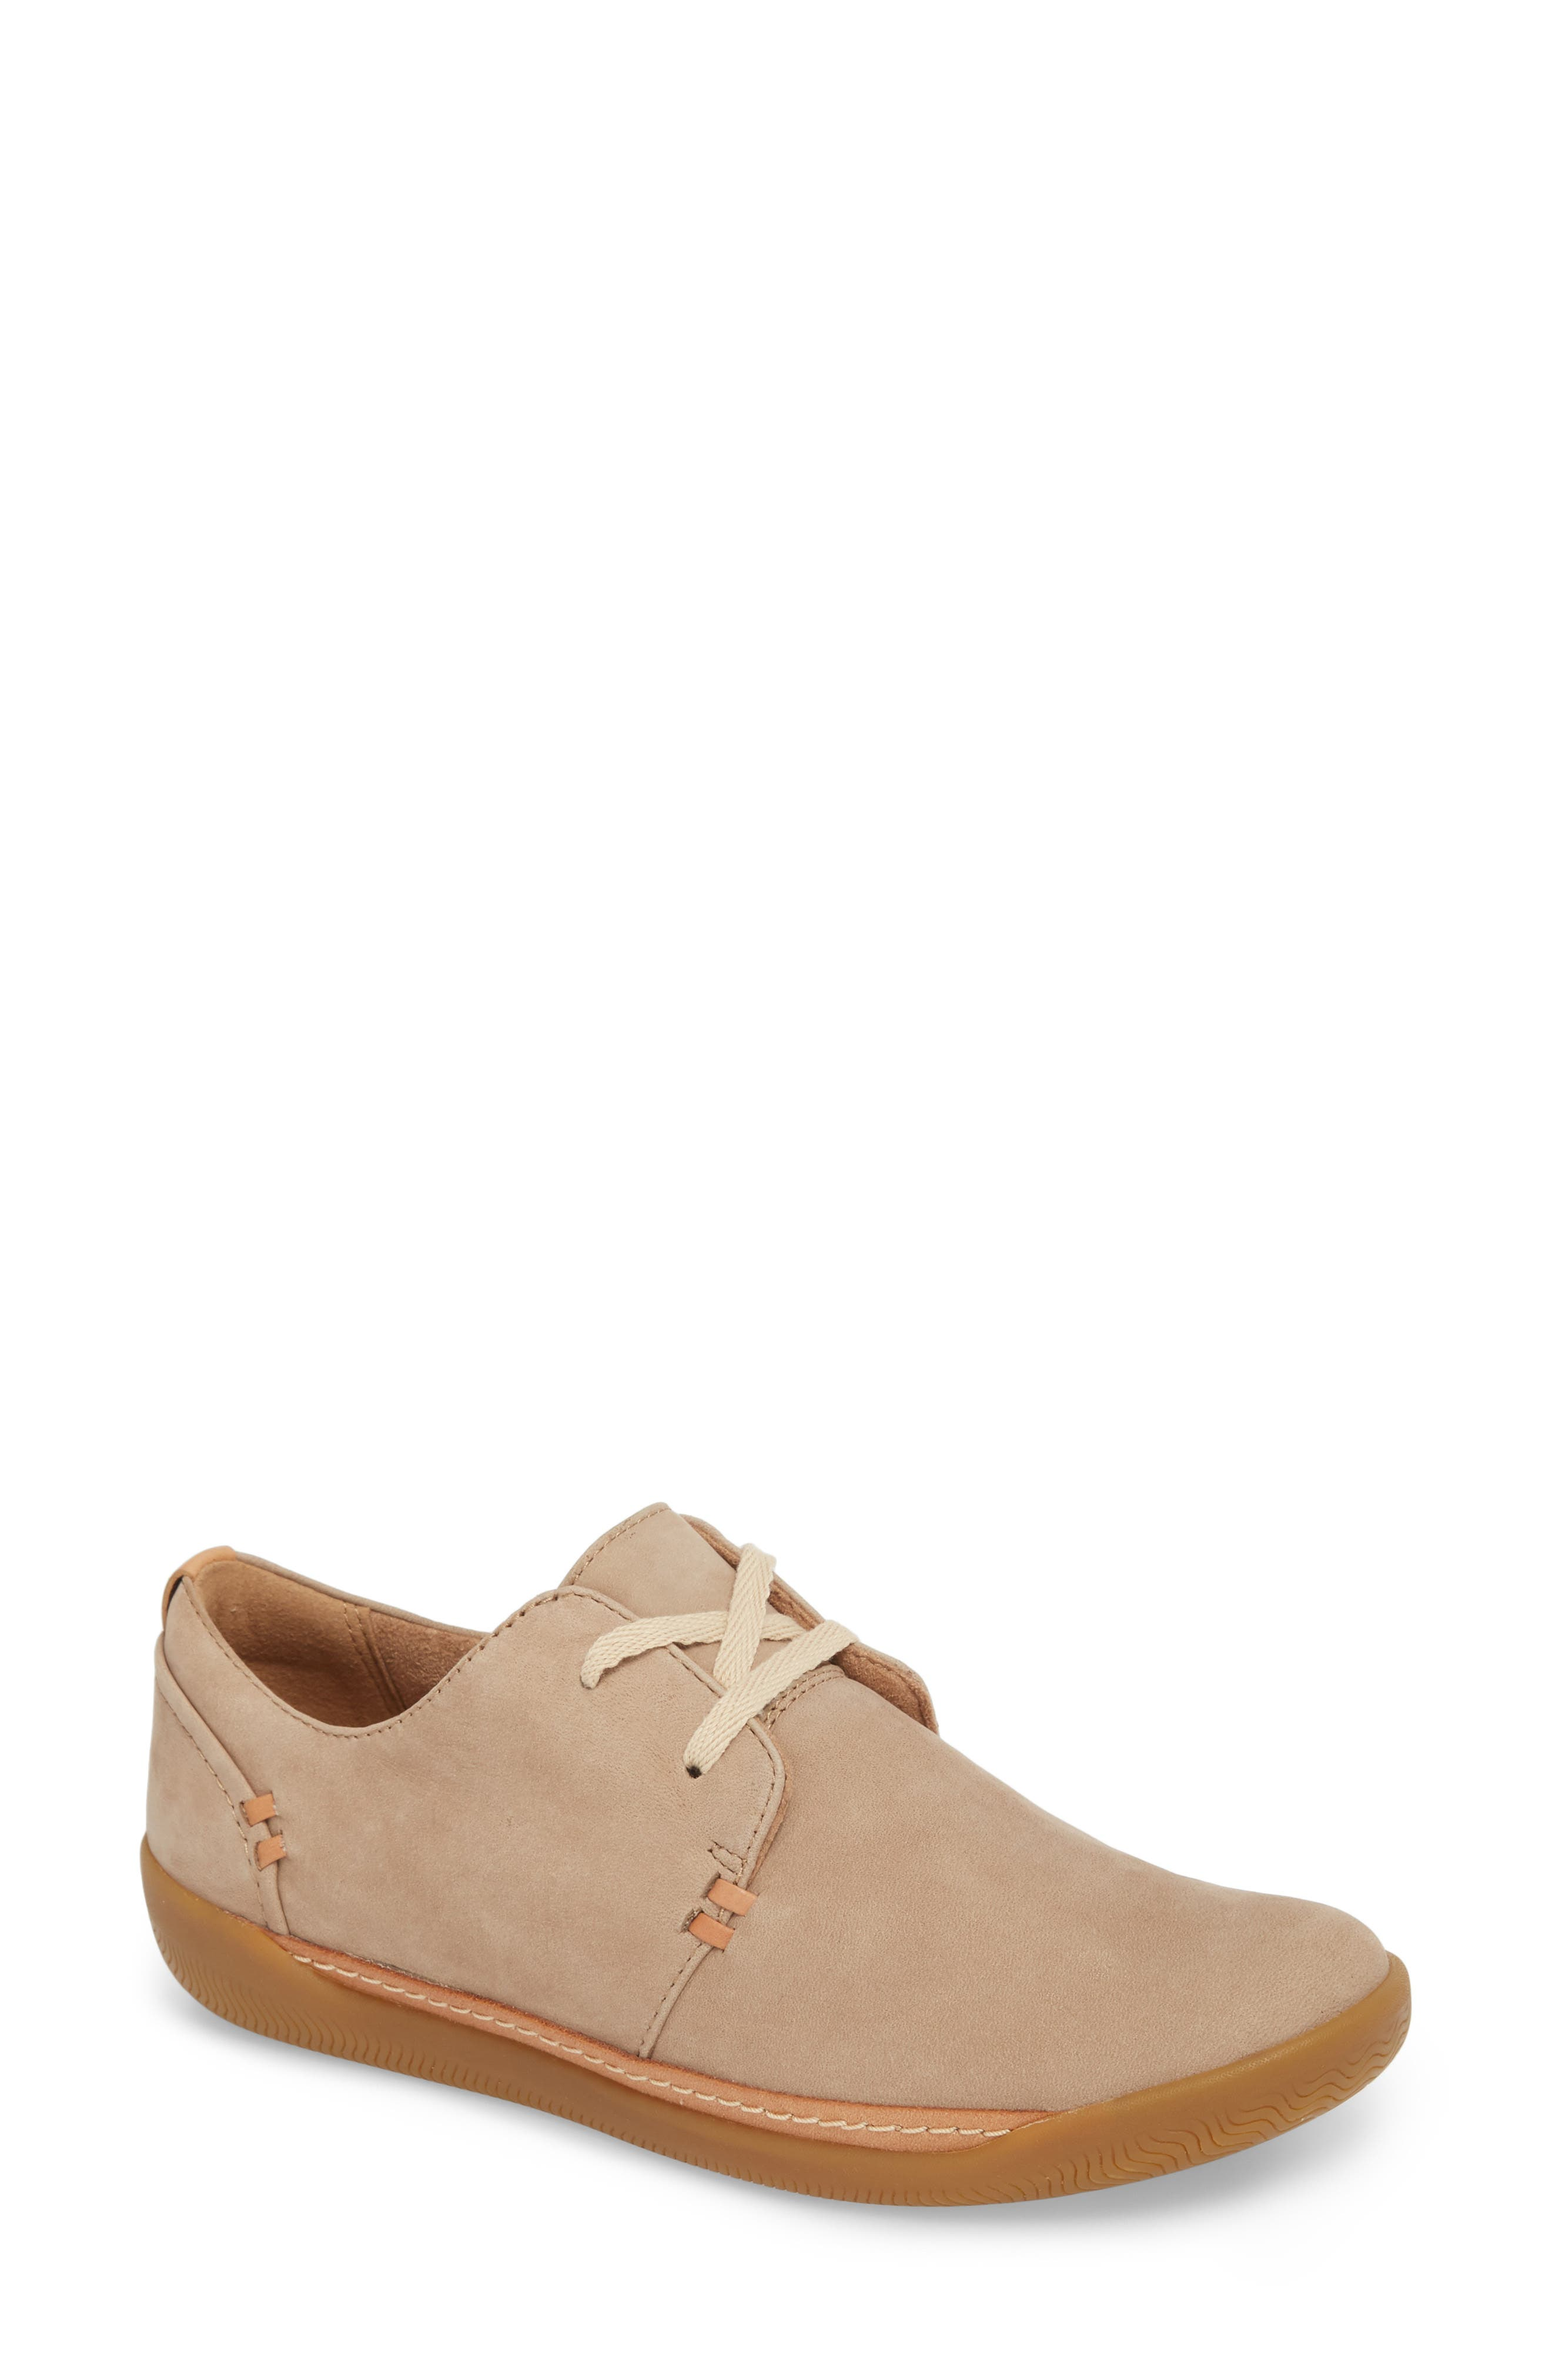 Un Haven Flat,                         Main,                         color, Sand Nubuck